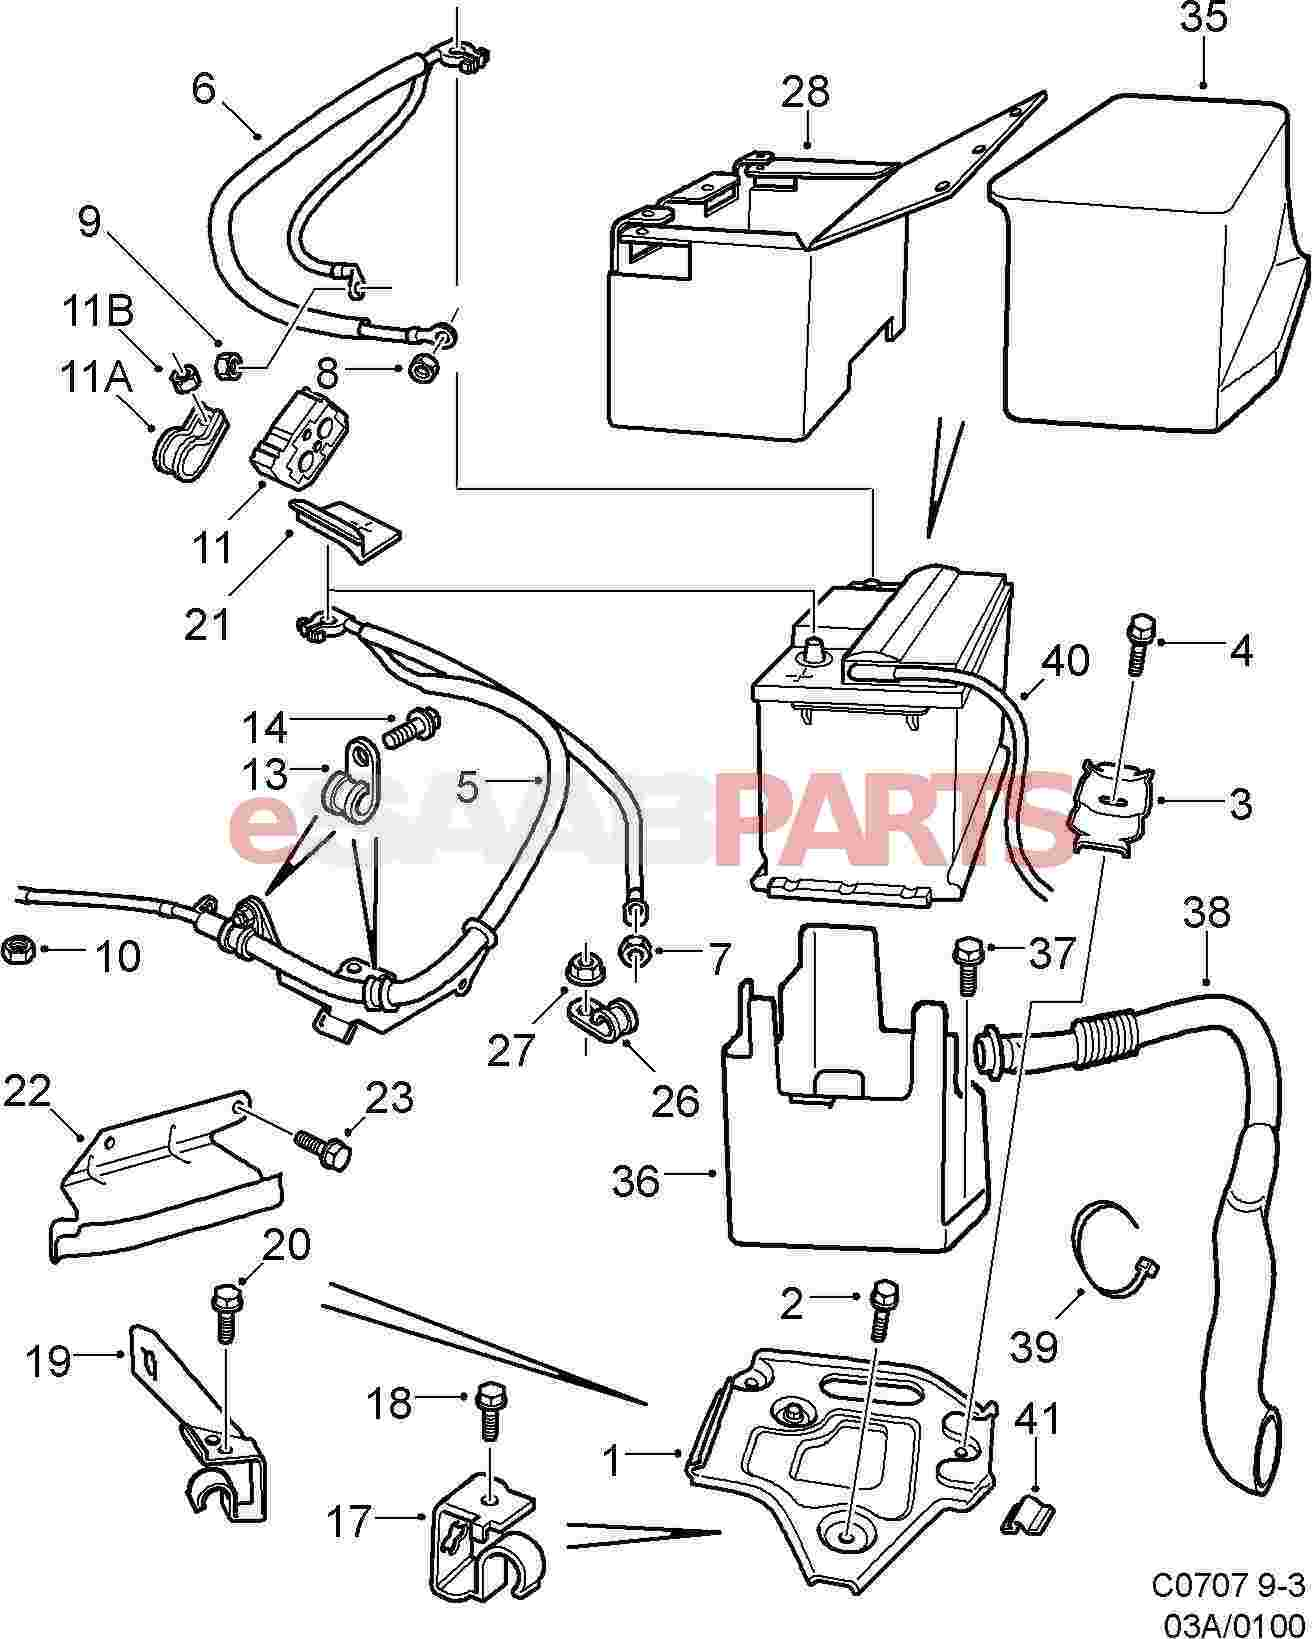 Ford Escape Engine Parts Diagram Torzone Org. Ford. Auto